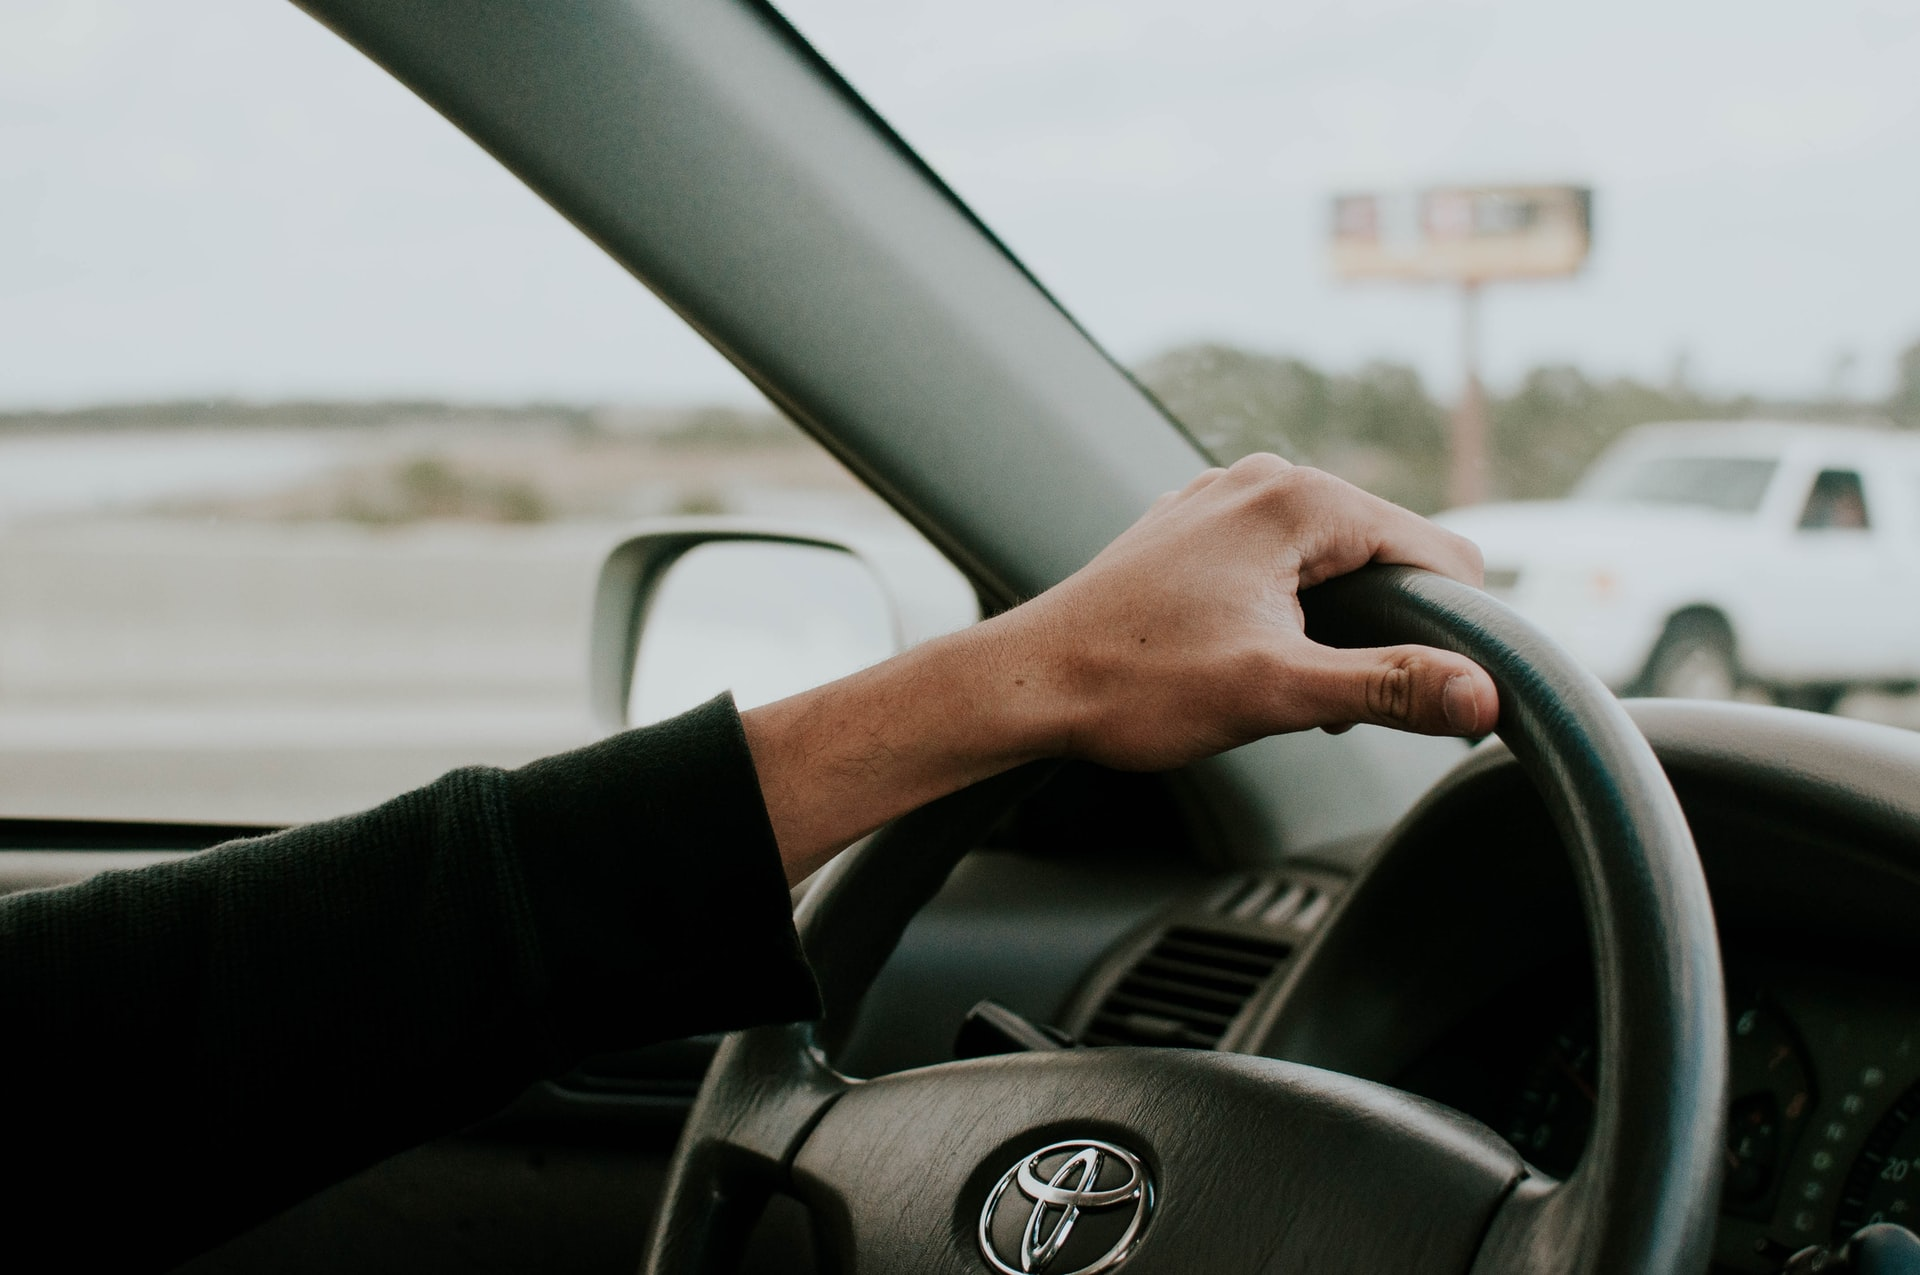 How to hire someone to drive your car cross country?